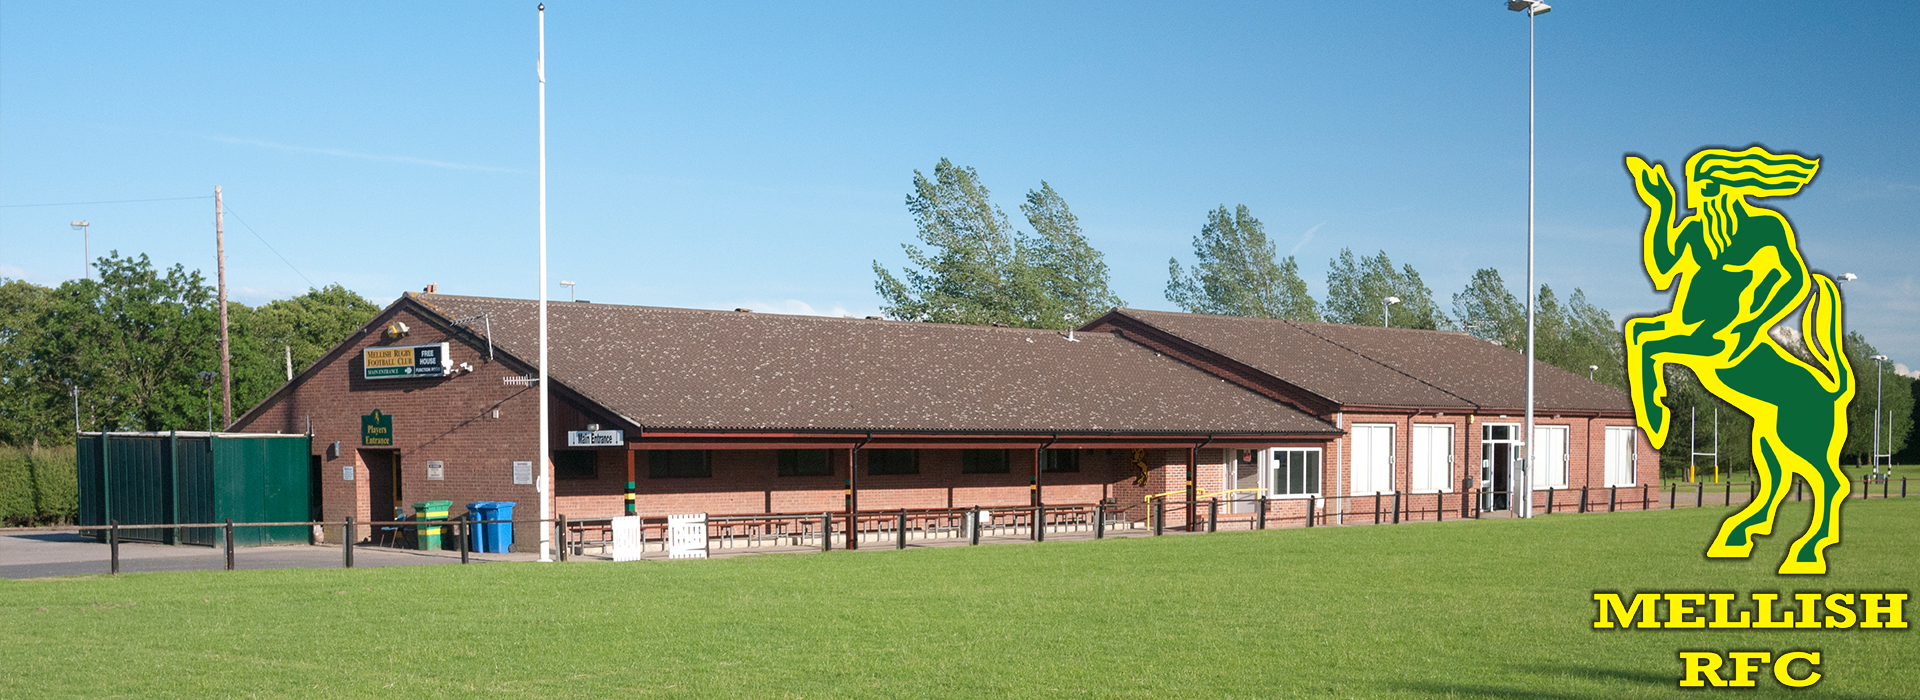 Mellish Rugby Club Function Room